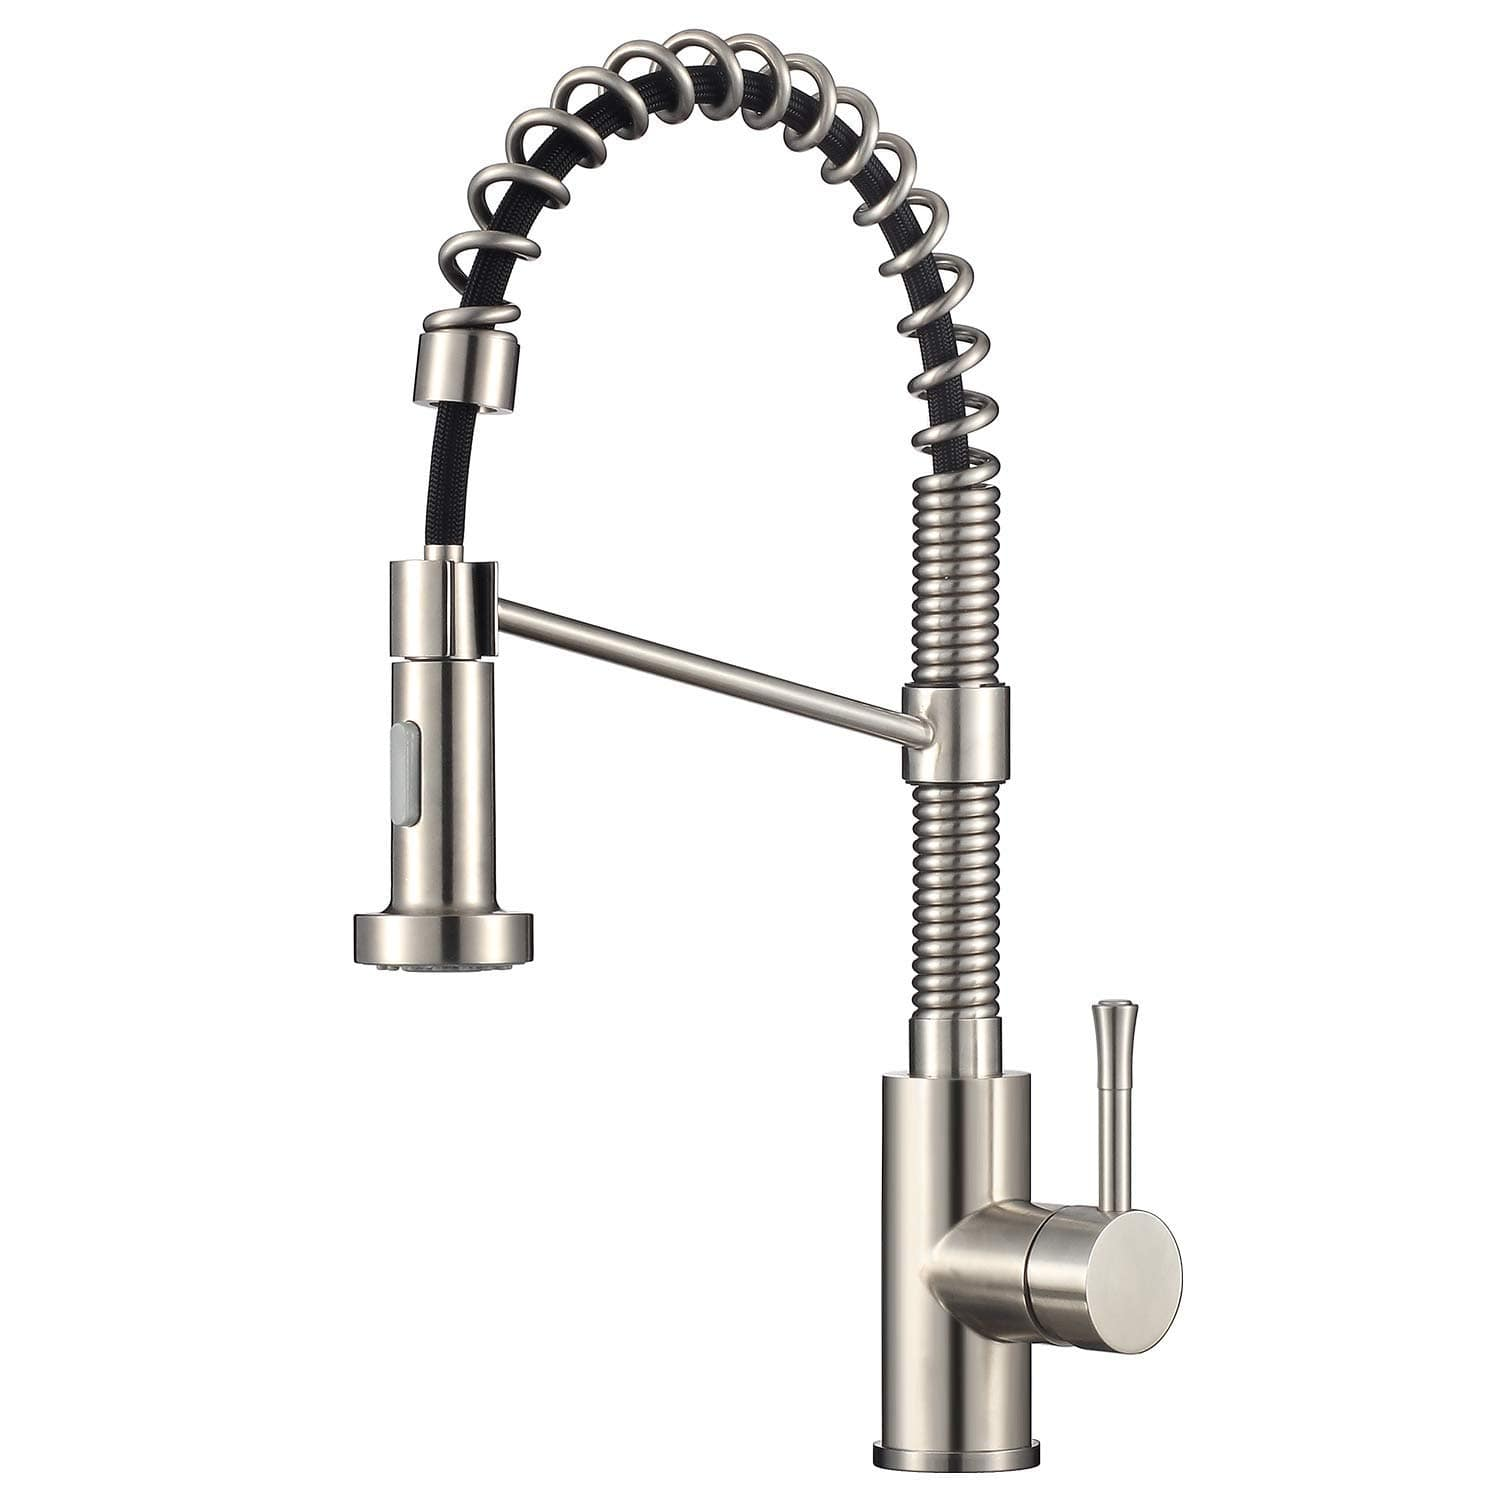 Commercial Kitchen Faucet With Dual Function Pull Down